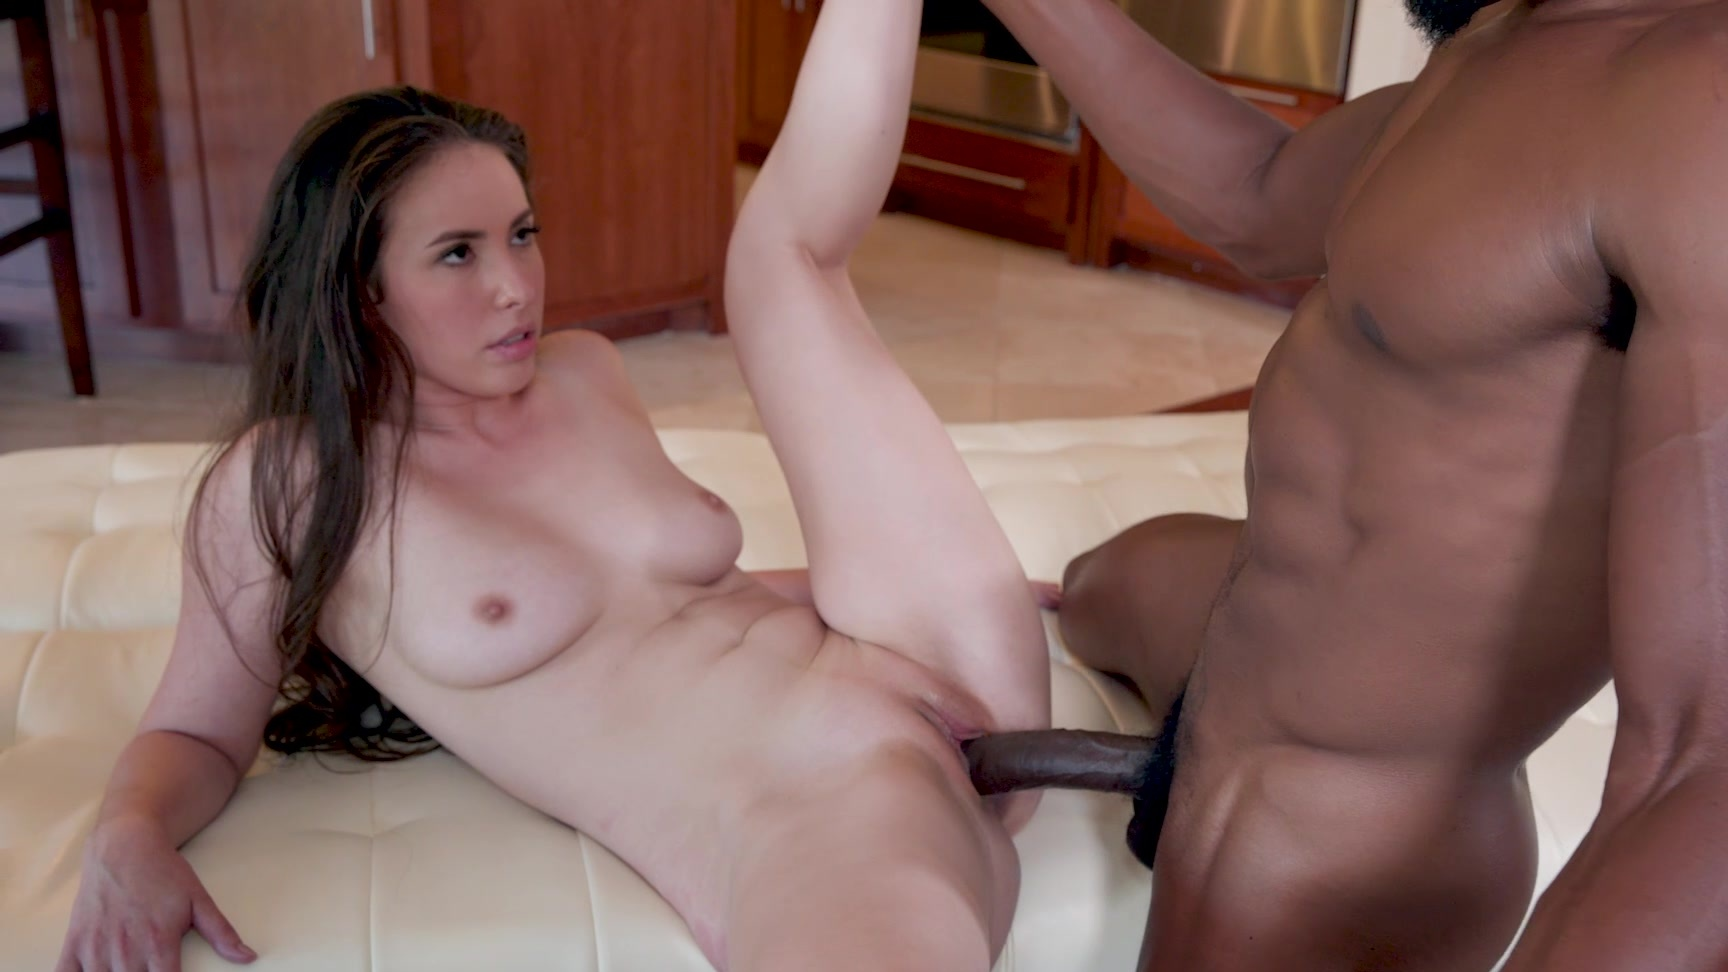 Asshole Excavations Porn showing porn images for casey calvert anal porn   www